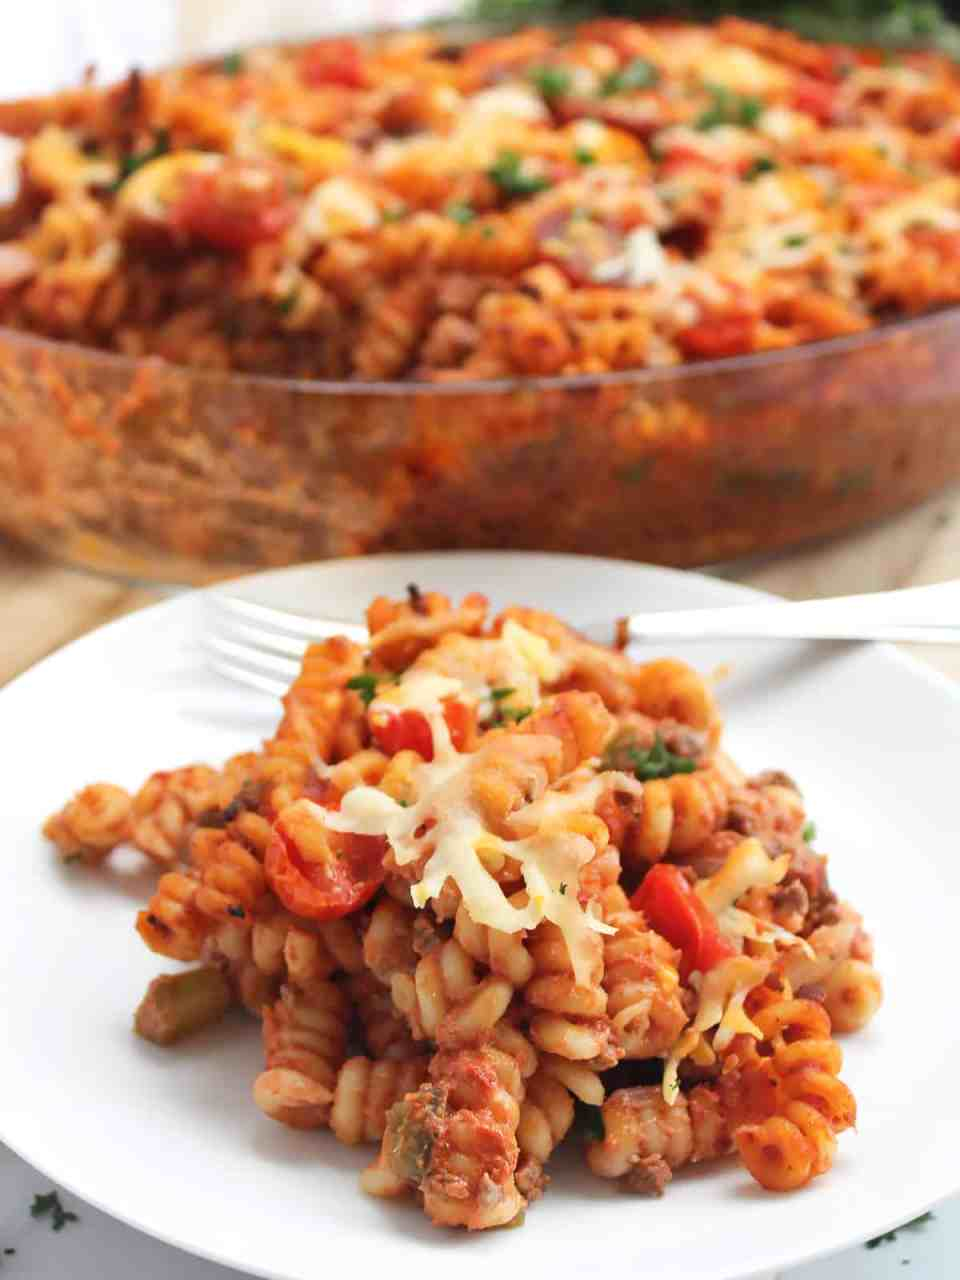 A serving of ground beef pasta bake on a white plate with a fork.